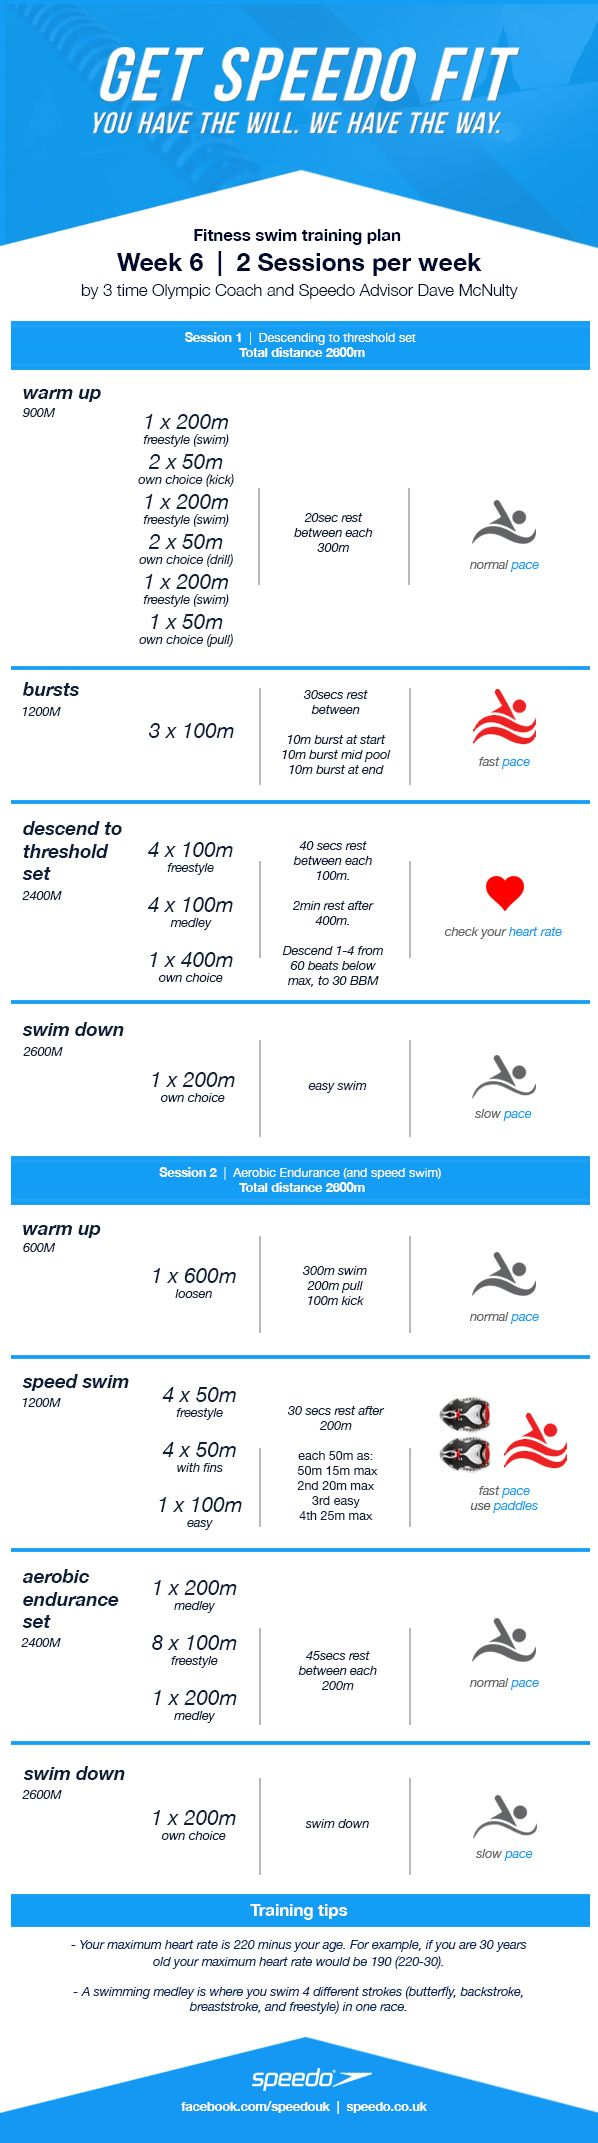 Swimming For Fitness. – Speedo Swim Fitness Training Plan (Week 6 of 8)